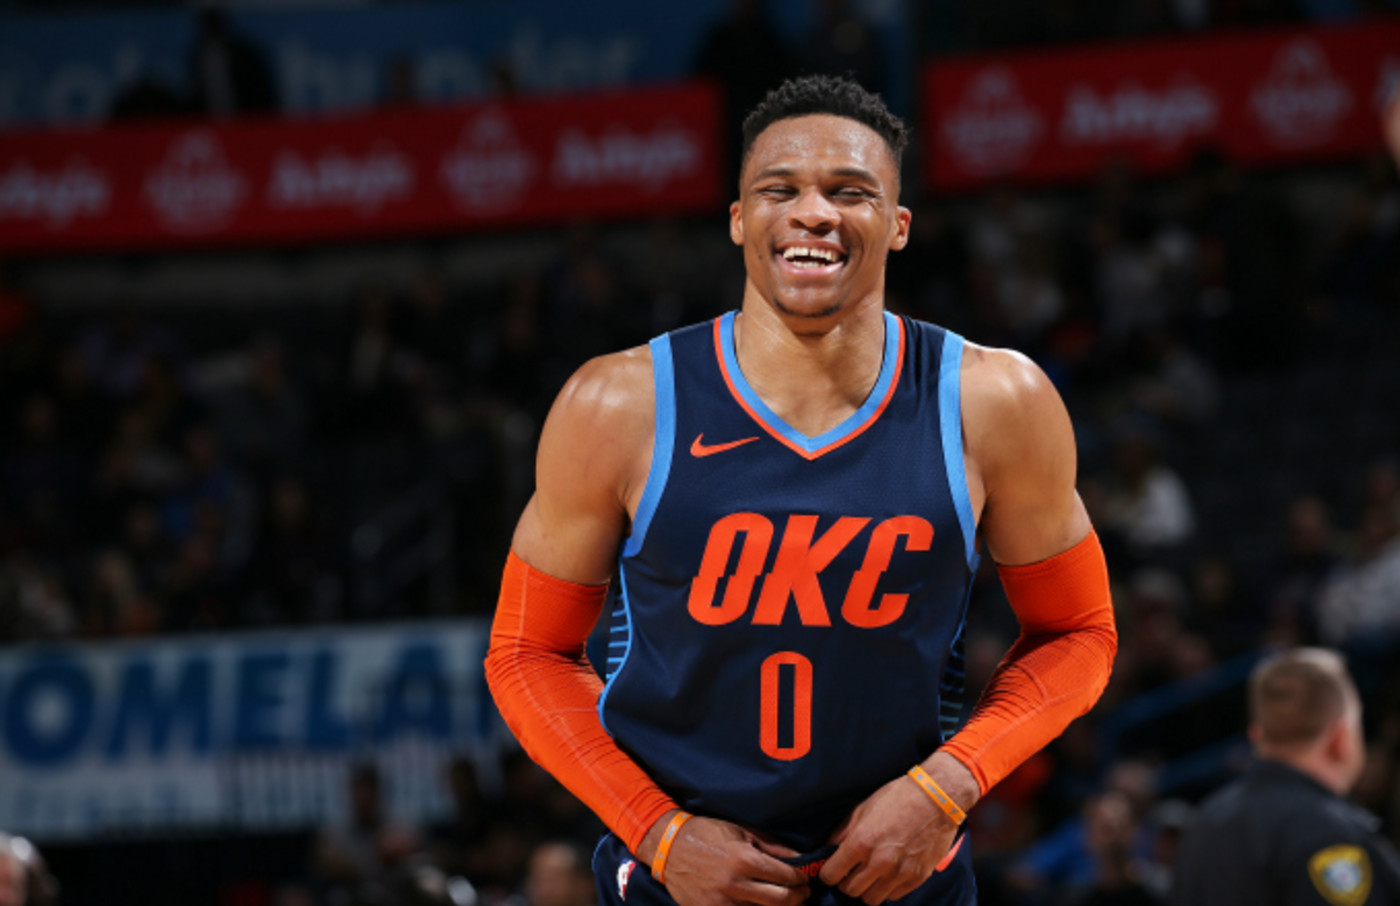 Russell Westbrook #0 of the Oklahoma City Thunder smiles